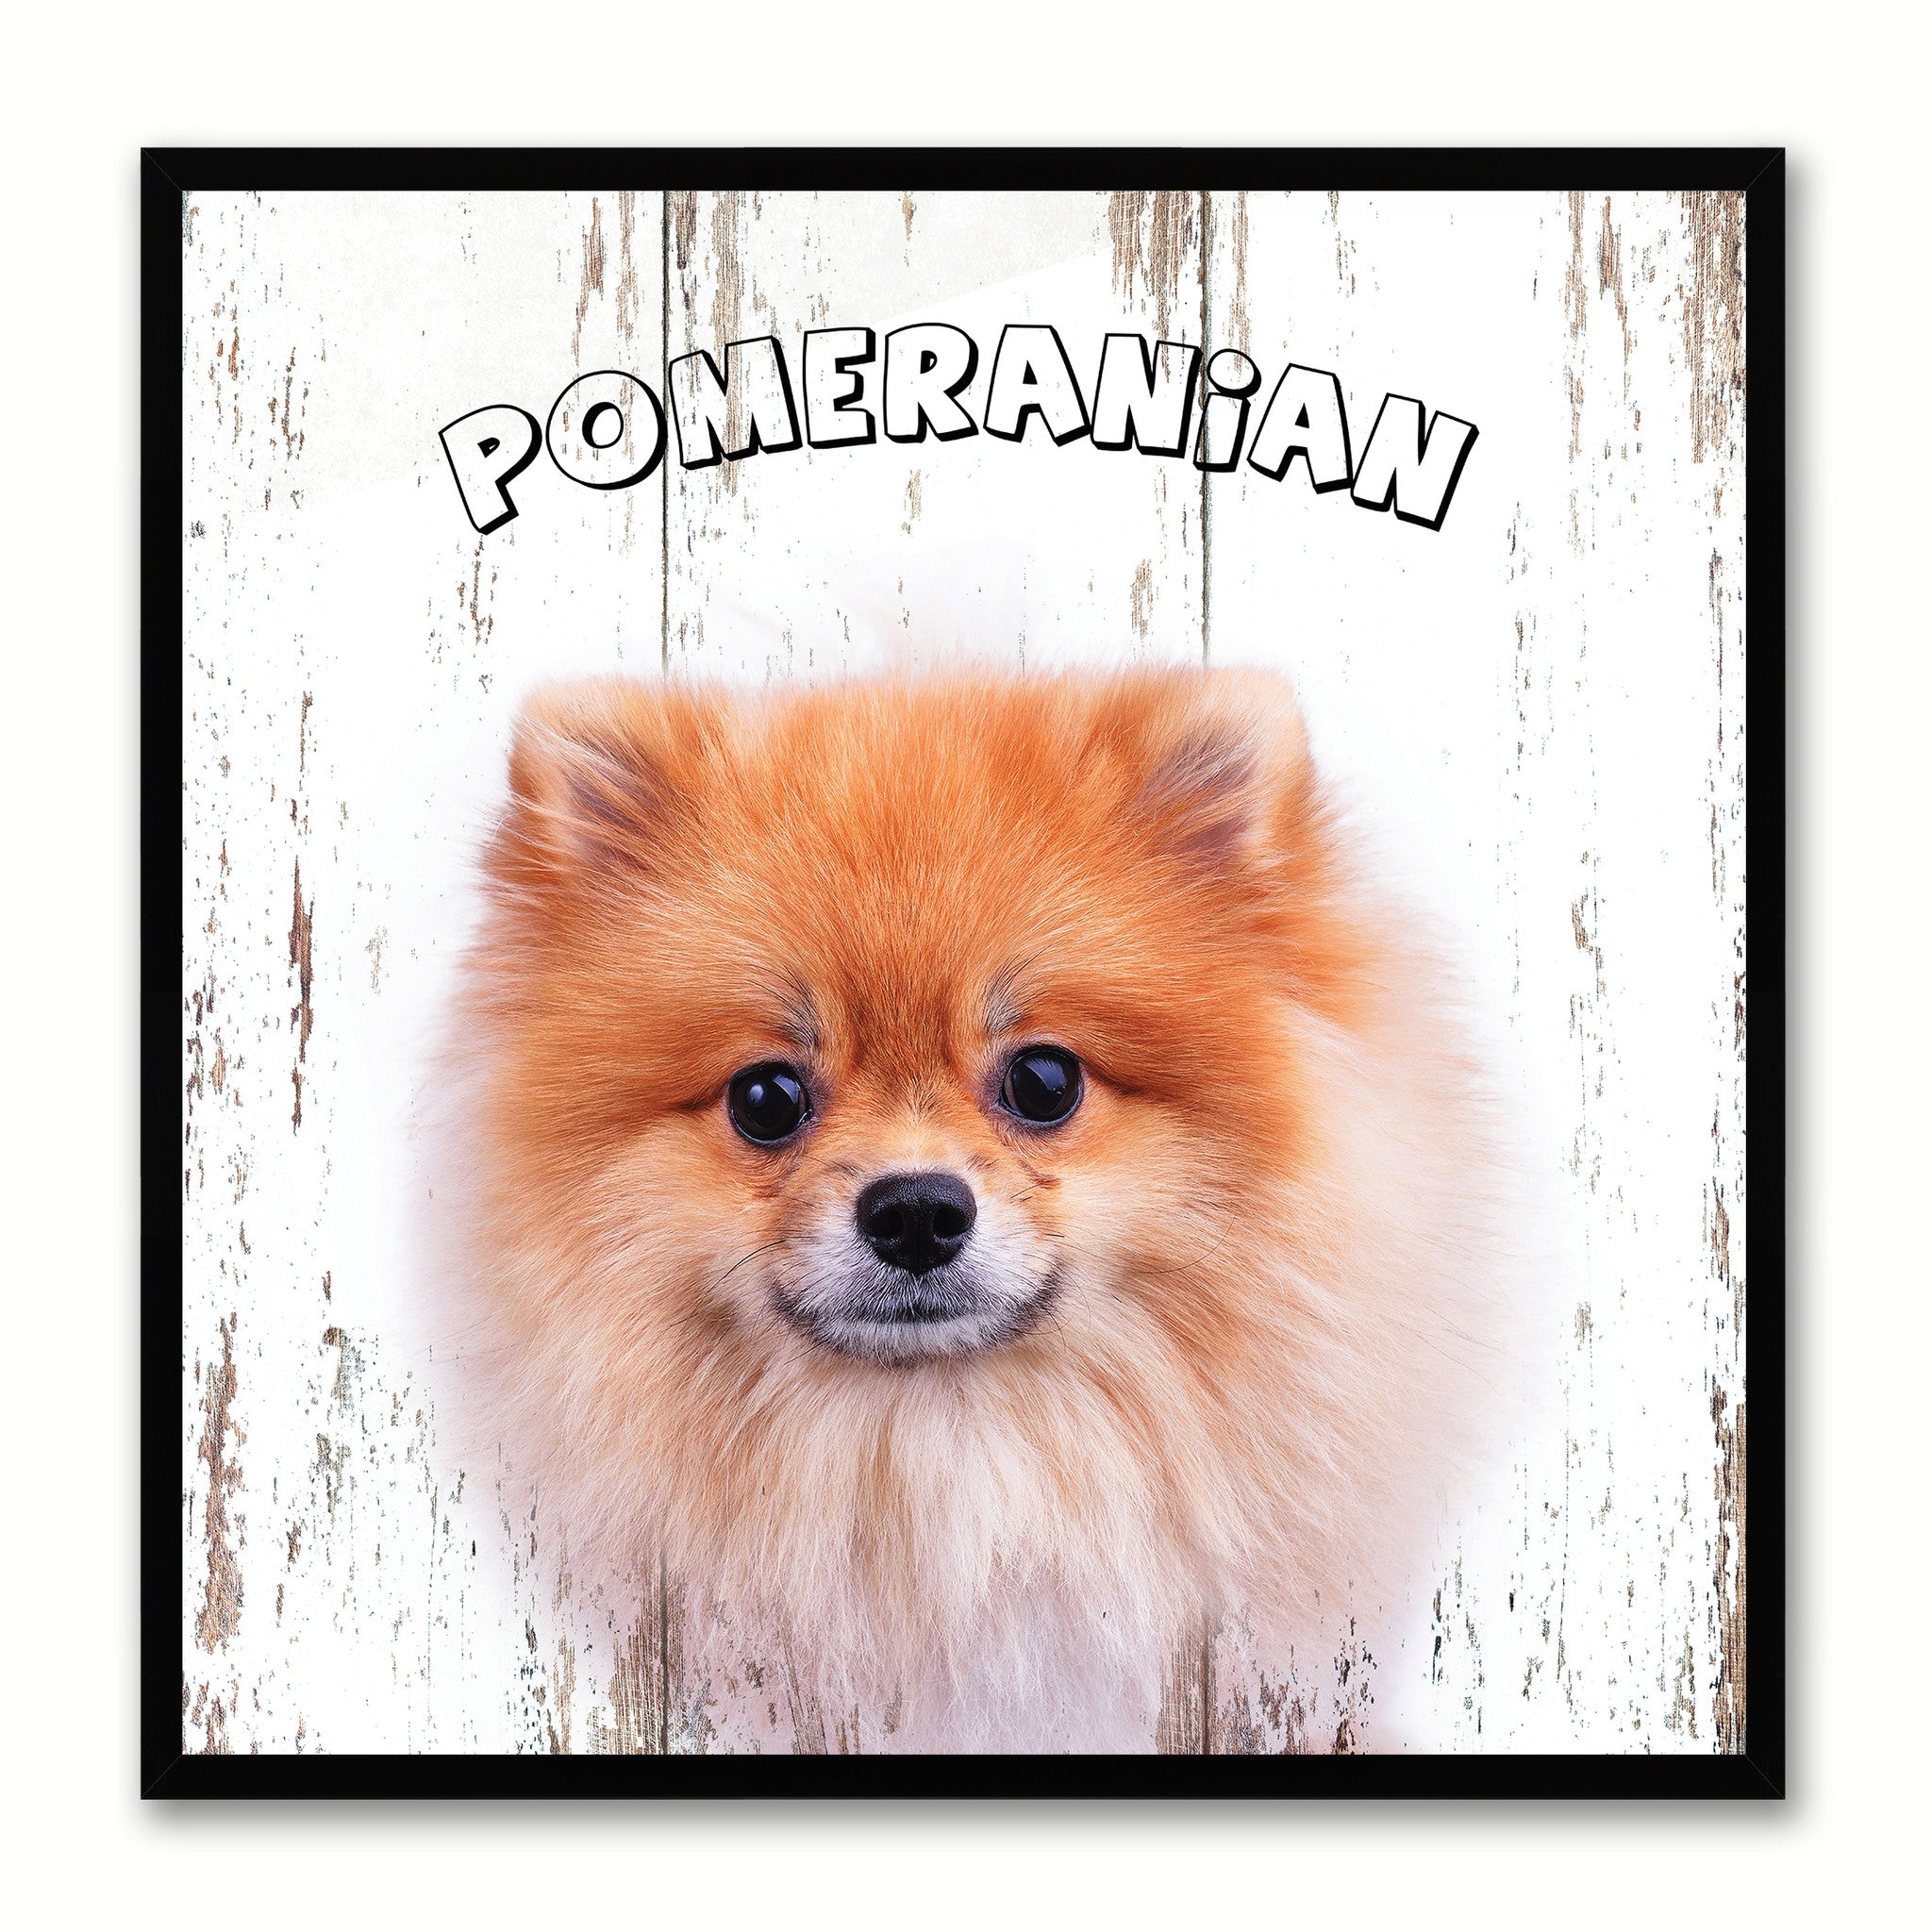 Pomeranian Dog Canvas Print Picture Frame Gift Home Decor Wall Art Decoration